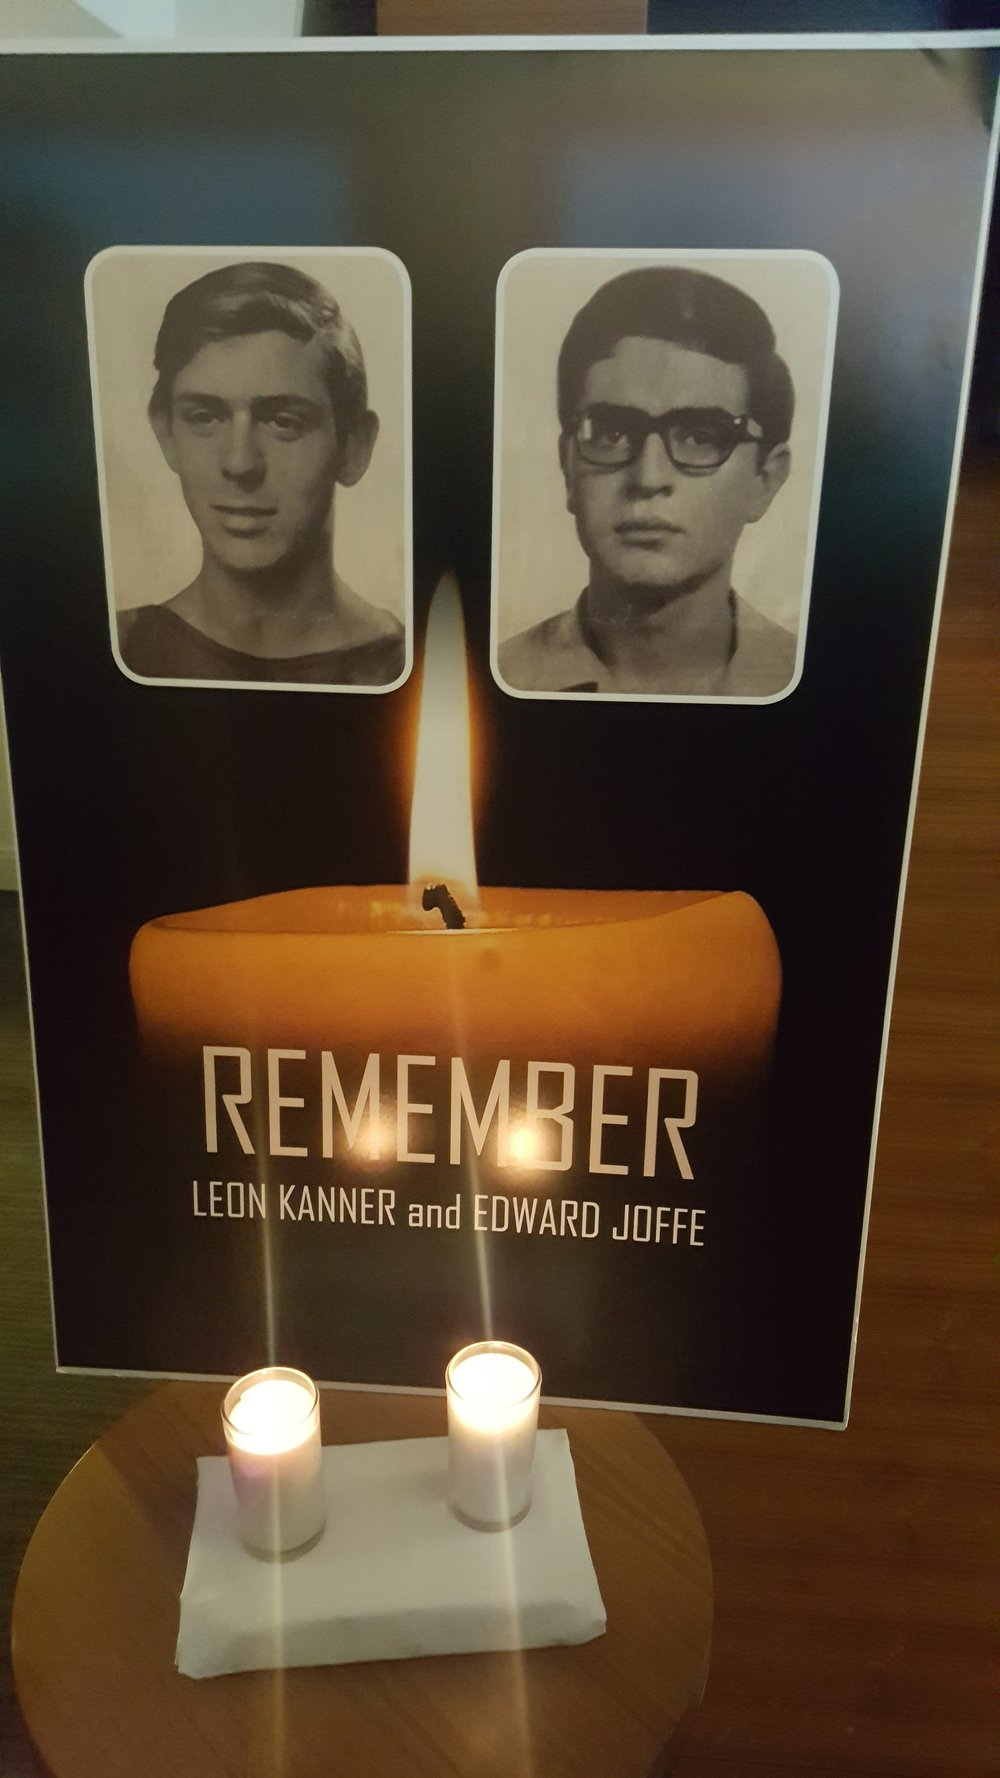 A poster for Leon Kanner and Edward Joffe, Palestinian terrorist Rasmeah Odeh's victims, at a memorial service Sunday in Chicago. Credit: Paul Miller.